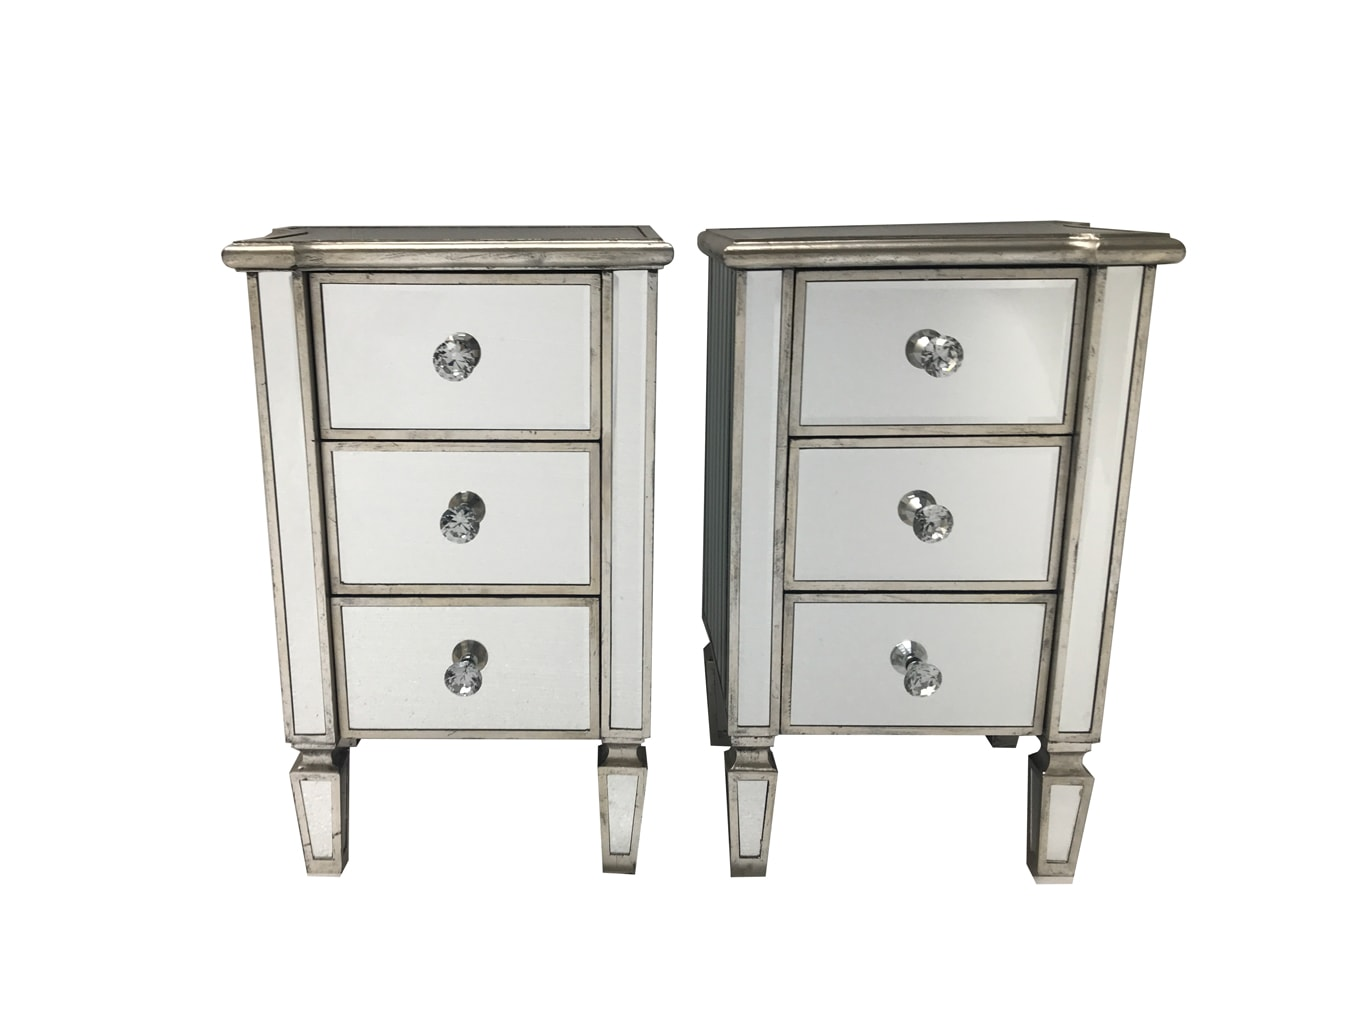 Marbella pair of mirrored bedsides, 3 drawers, crystal knobs, wood and mirror, antiqued silver finish